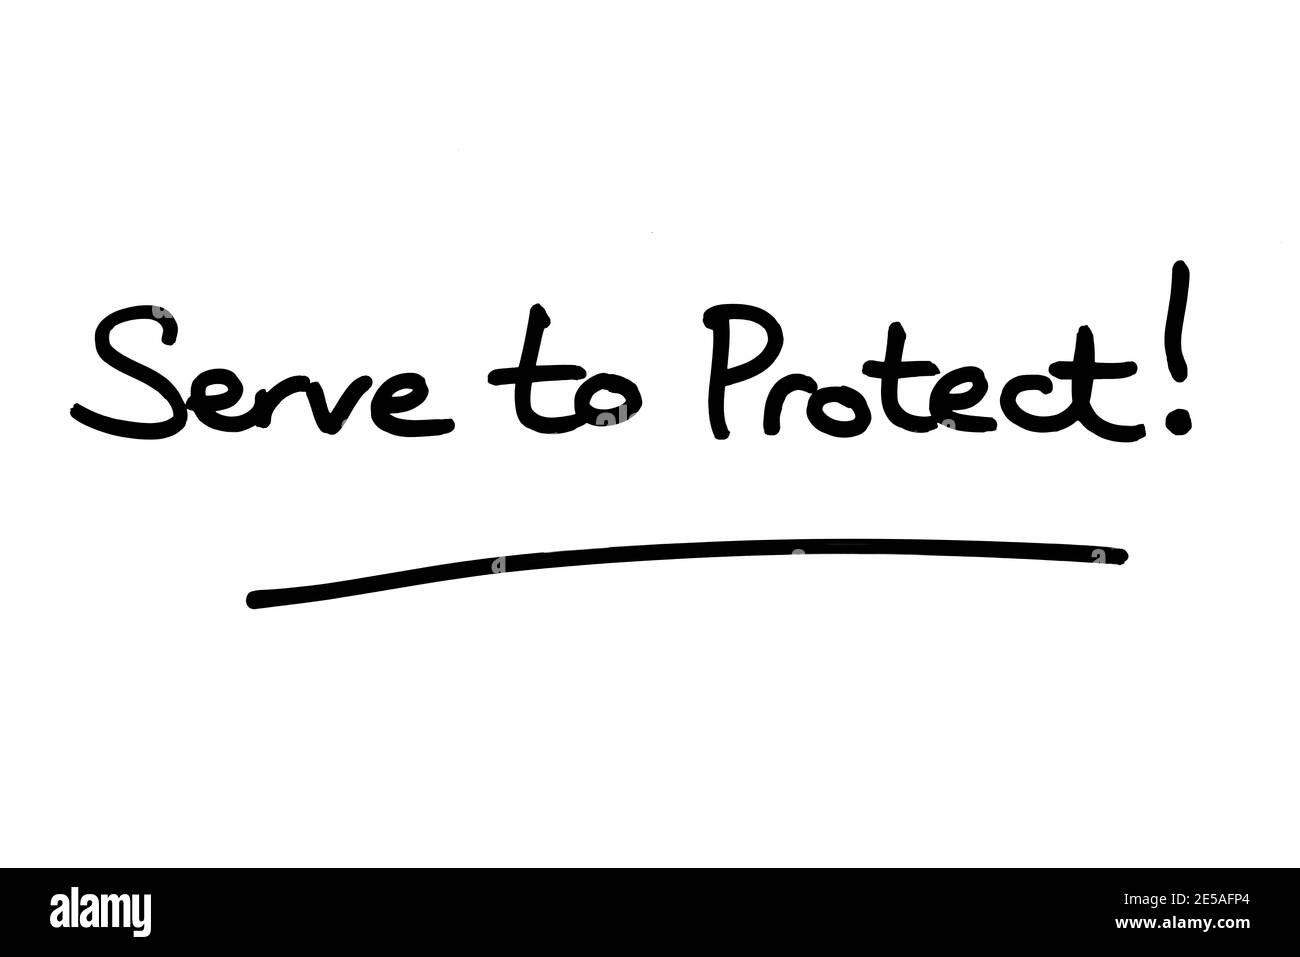 Serve to Protect! handwritten on a white background. Stock Photo